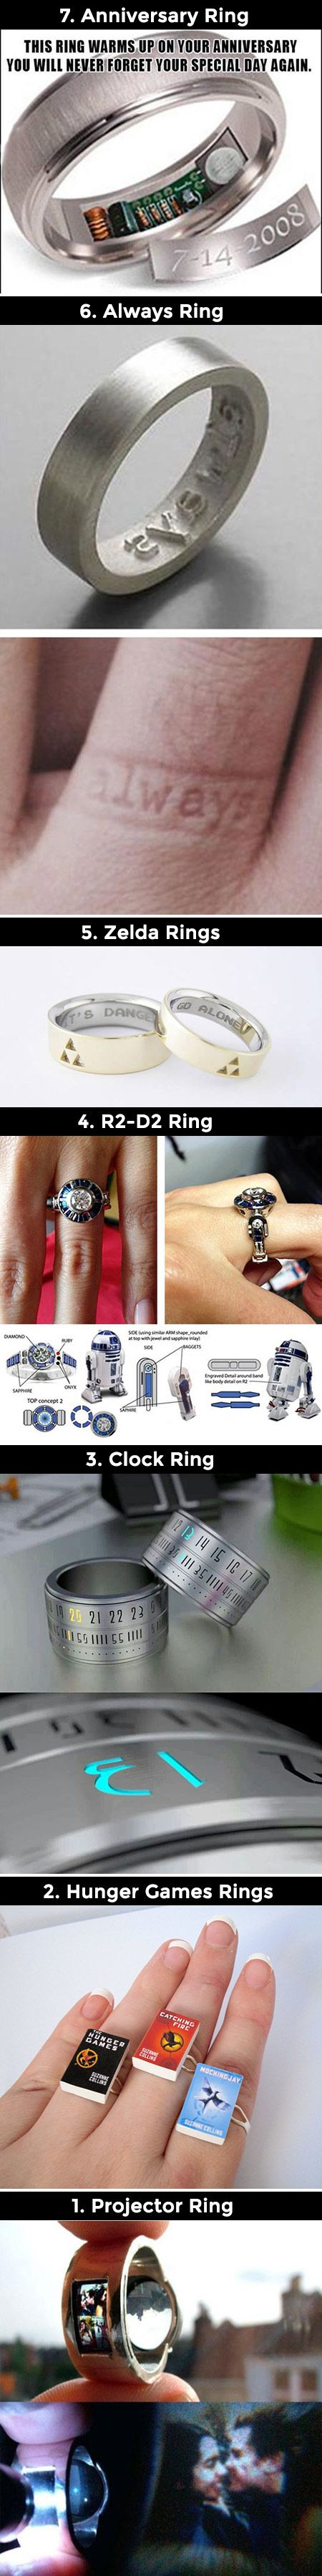 We have rounded up a batch of the geekiest rings you will ever see.